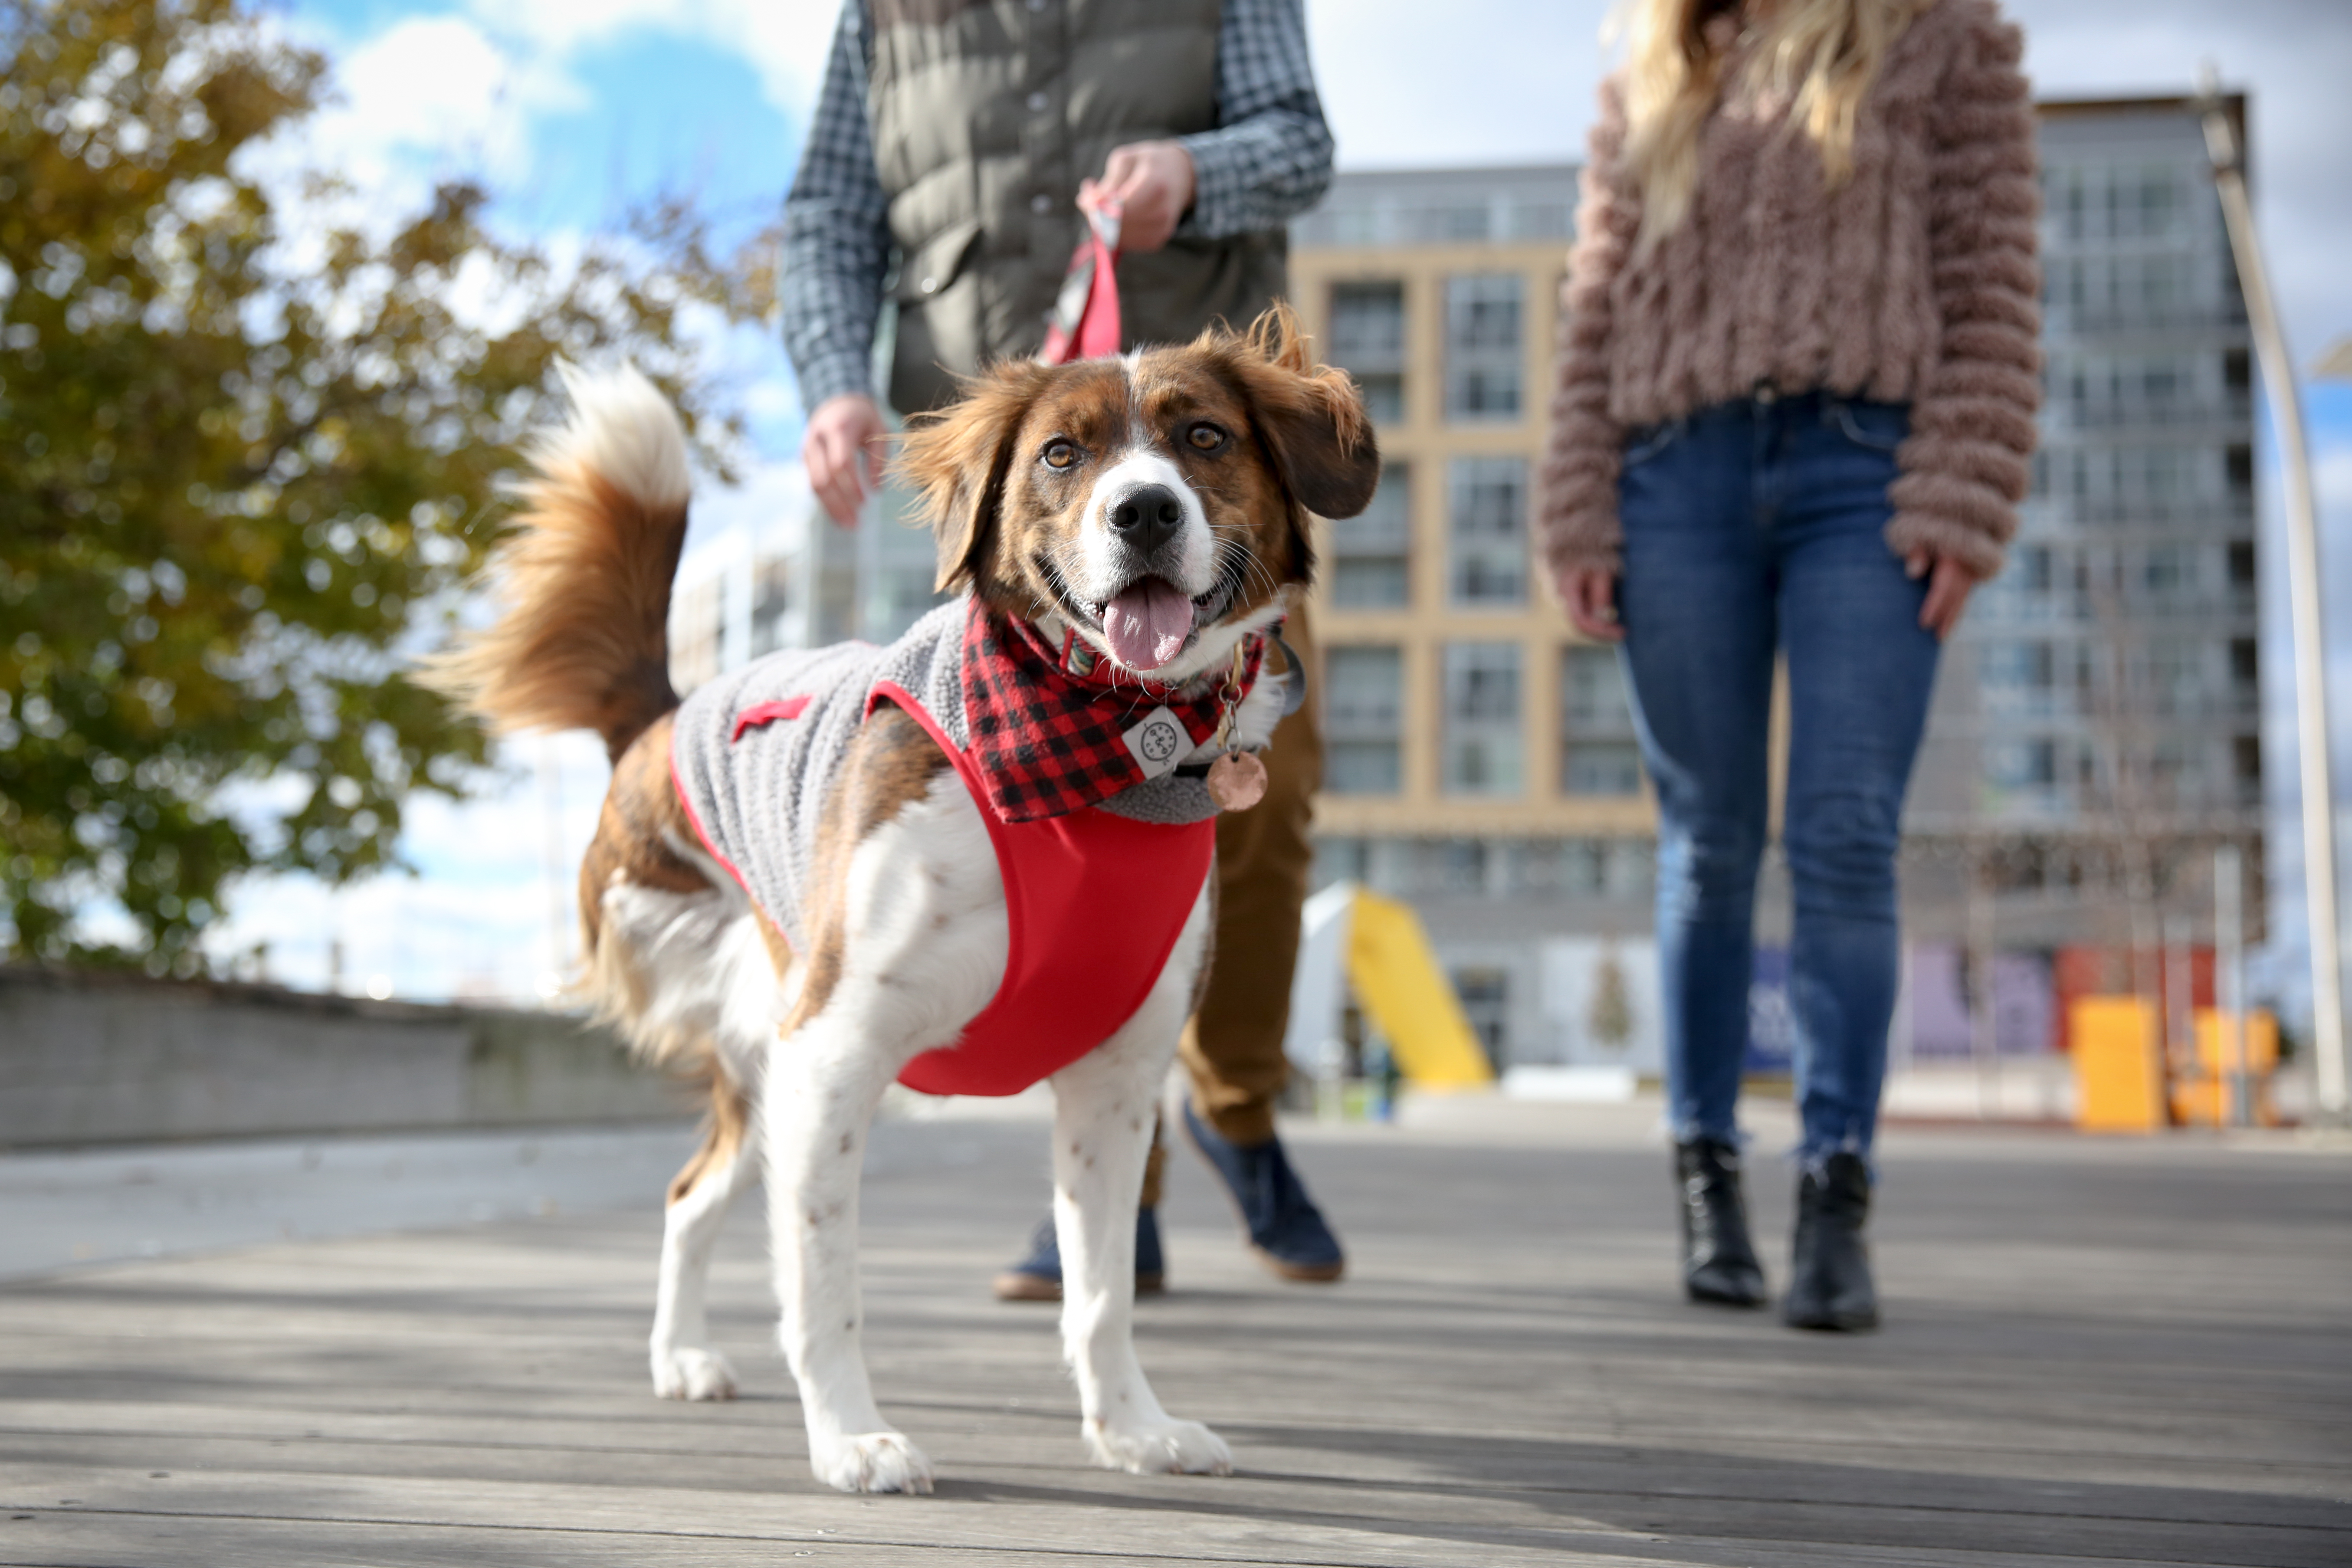 We're looking for dogs to feature in our weekly ruffined spotlight! Whether your pup is a mutt, purebred, skinny, chubby, young or old, we'd love to feature your dog.{&amp;nbsp;} In order to be considered, we ask that you and your dog live in D.C. or the surrounding area and your dog can sit and stay.{&amp;nbsp;}Drop us an email at aandrade@dcrefined.com with you and your dog's name and location. Please tell us a bit about your dog too!{&amp;nbsp;}<br>